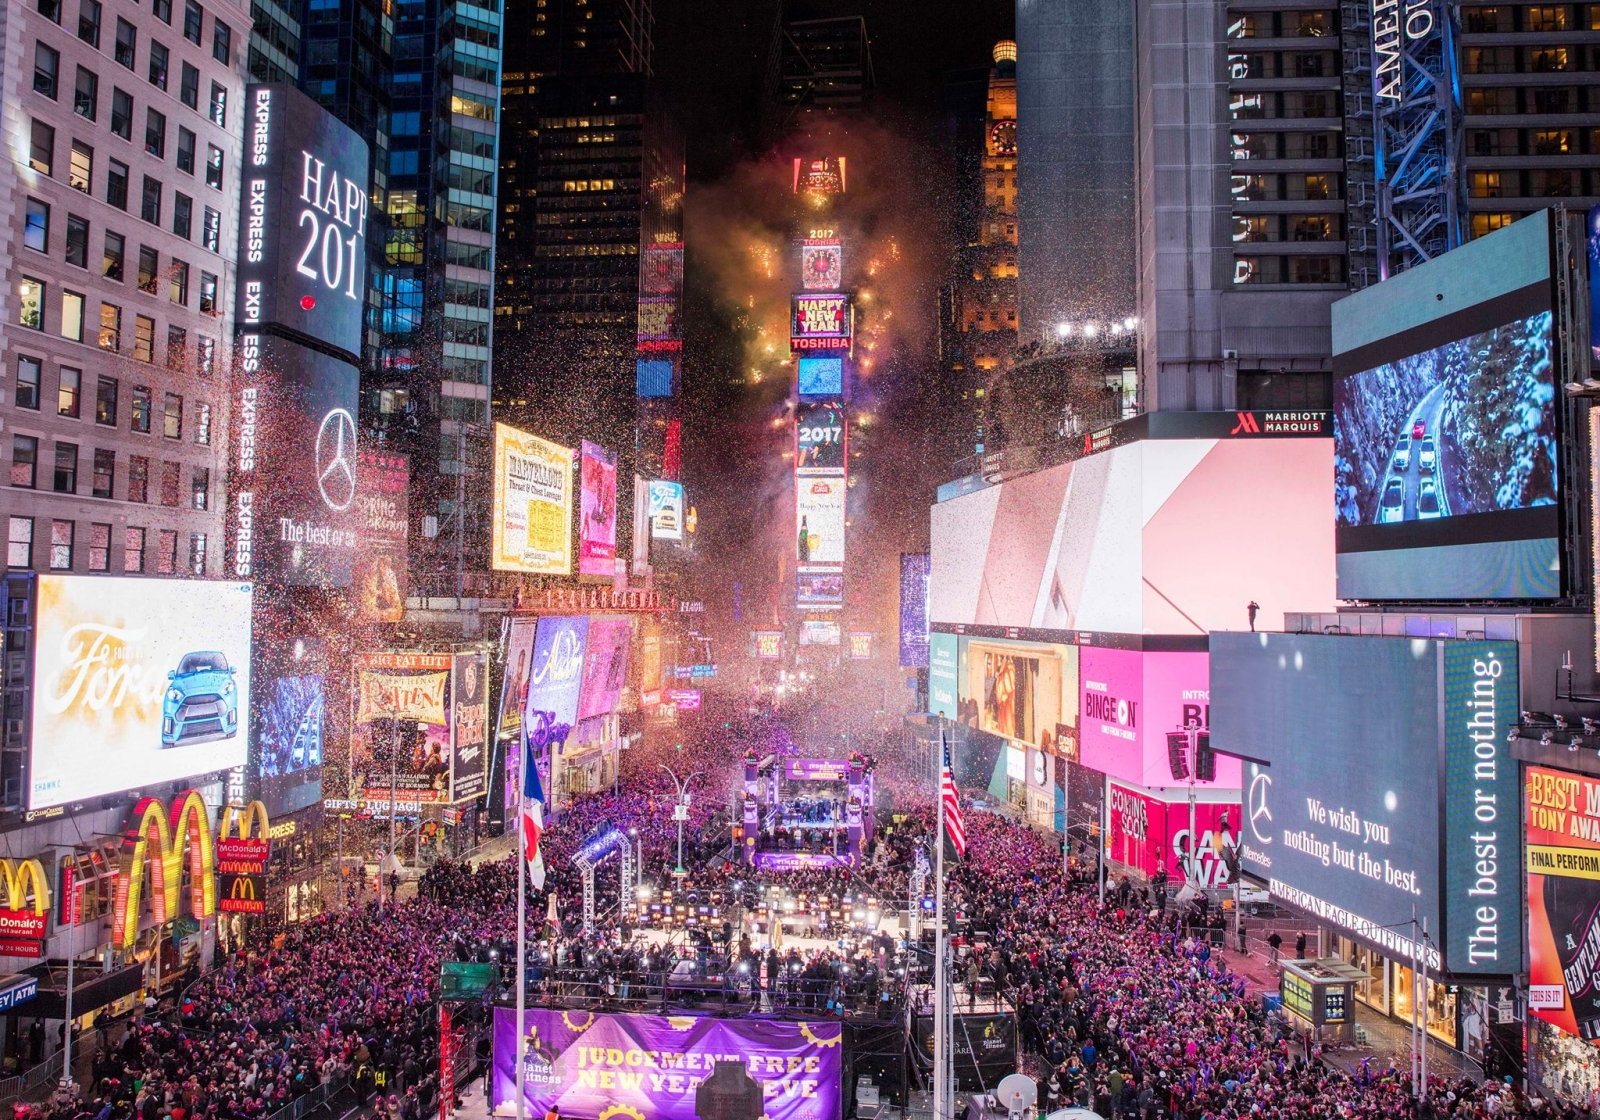 ProdWorks Lighting Chooses 4Wall NY for Times Square New Year s Eve     New York  NY  An estimated 2 million people ushered in the new year in Times  Square to watch the famed ball drop at midnight  Millions more tuned in and